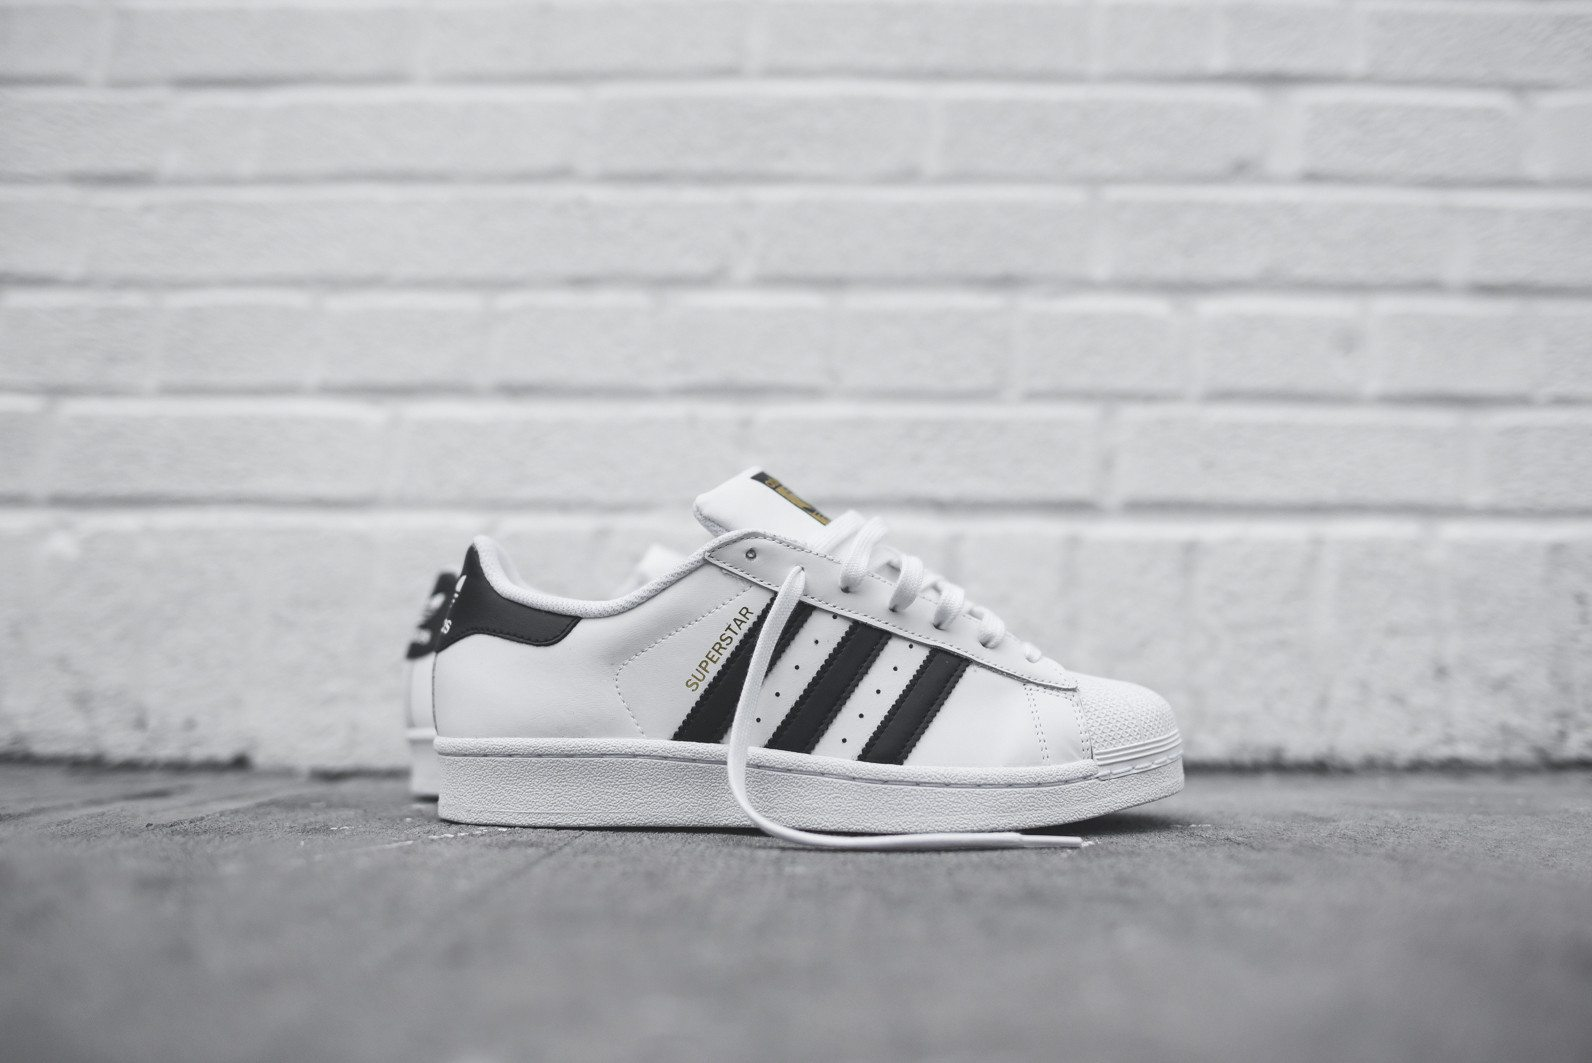 adidas Originals Superstar White Black 1